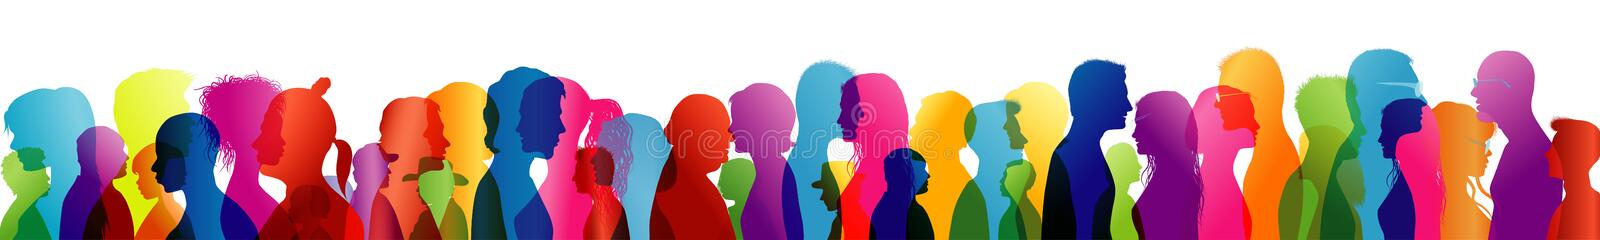 Crowd noise. Noisy people. Talking crowd. People talking. Colored silhouette profiles. Multiple exposure. Illustration with noisy crowd. Background noise of stock illustration